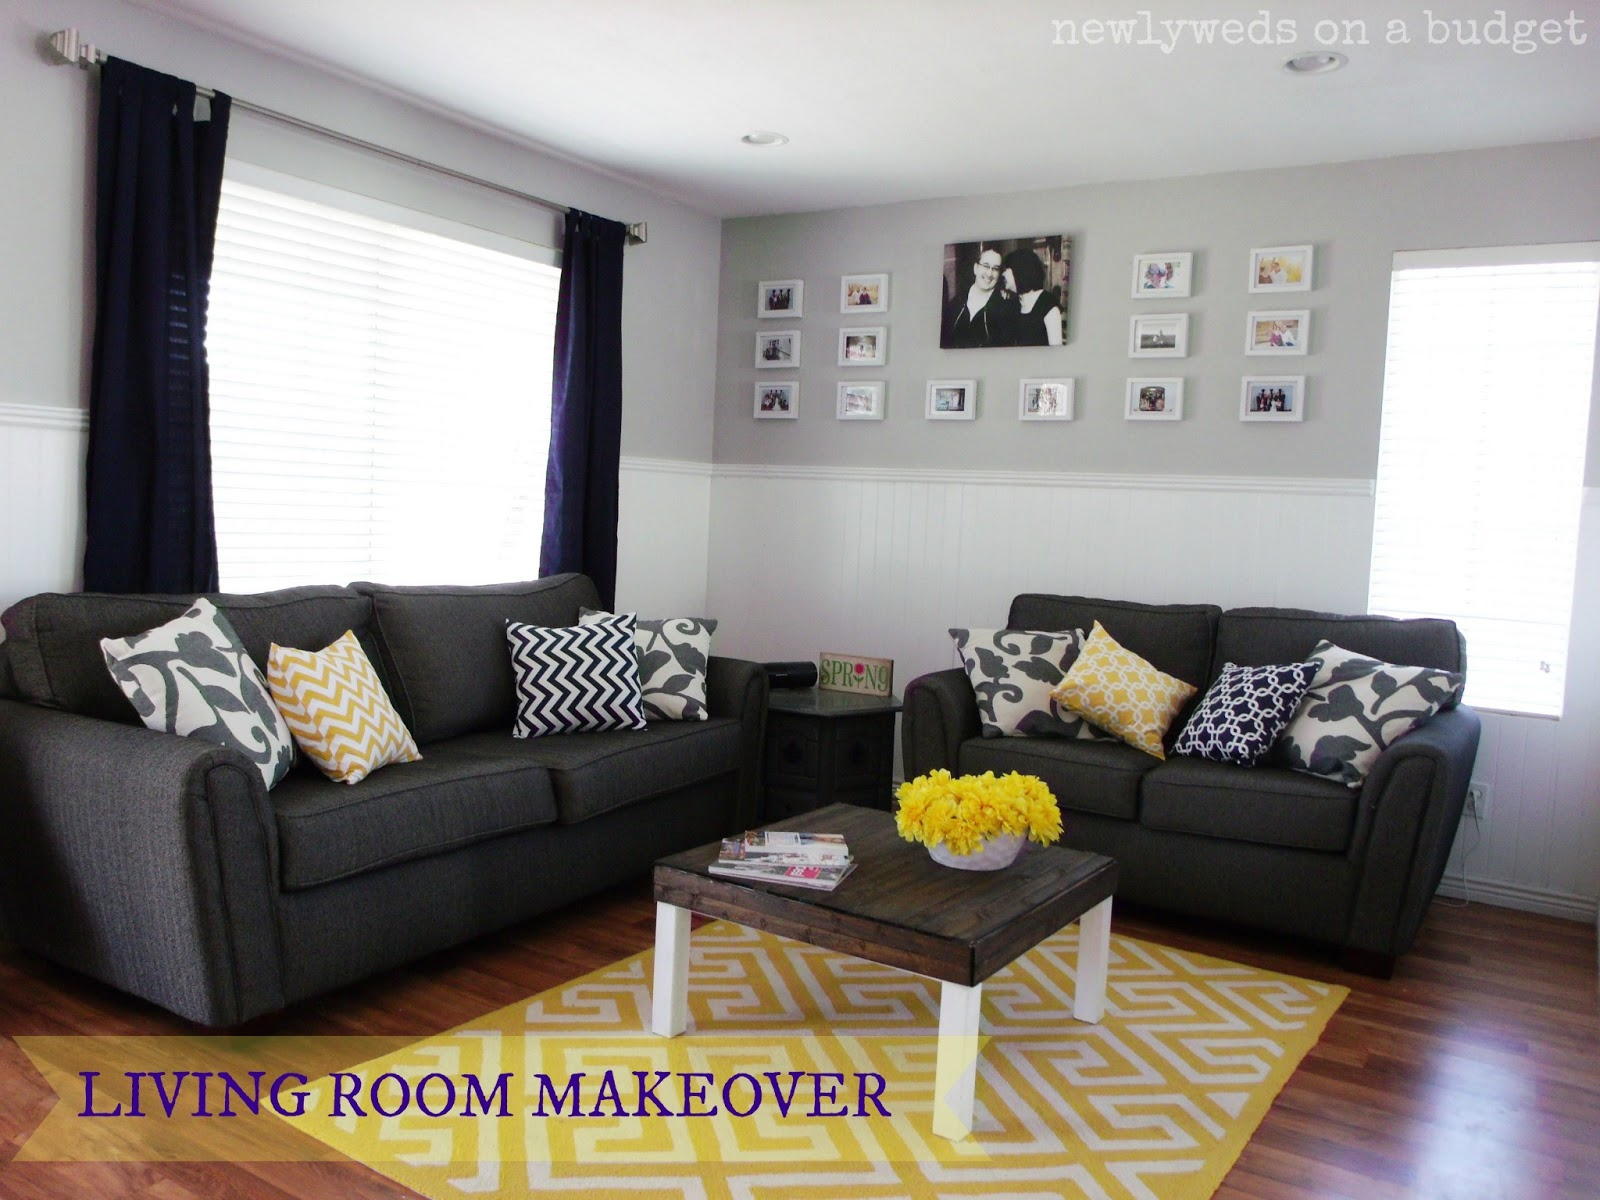 Newlyweds on a Budget: Living Room Reveal